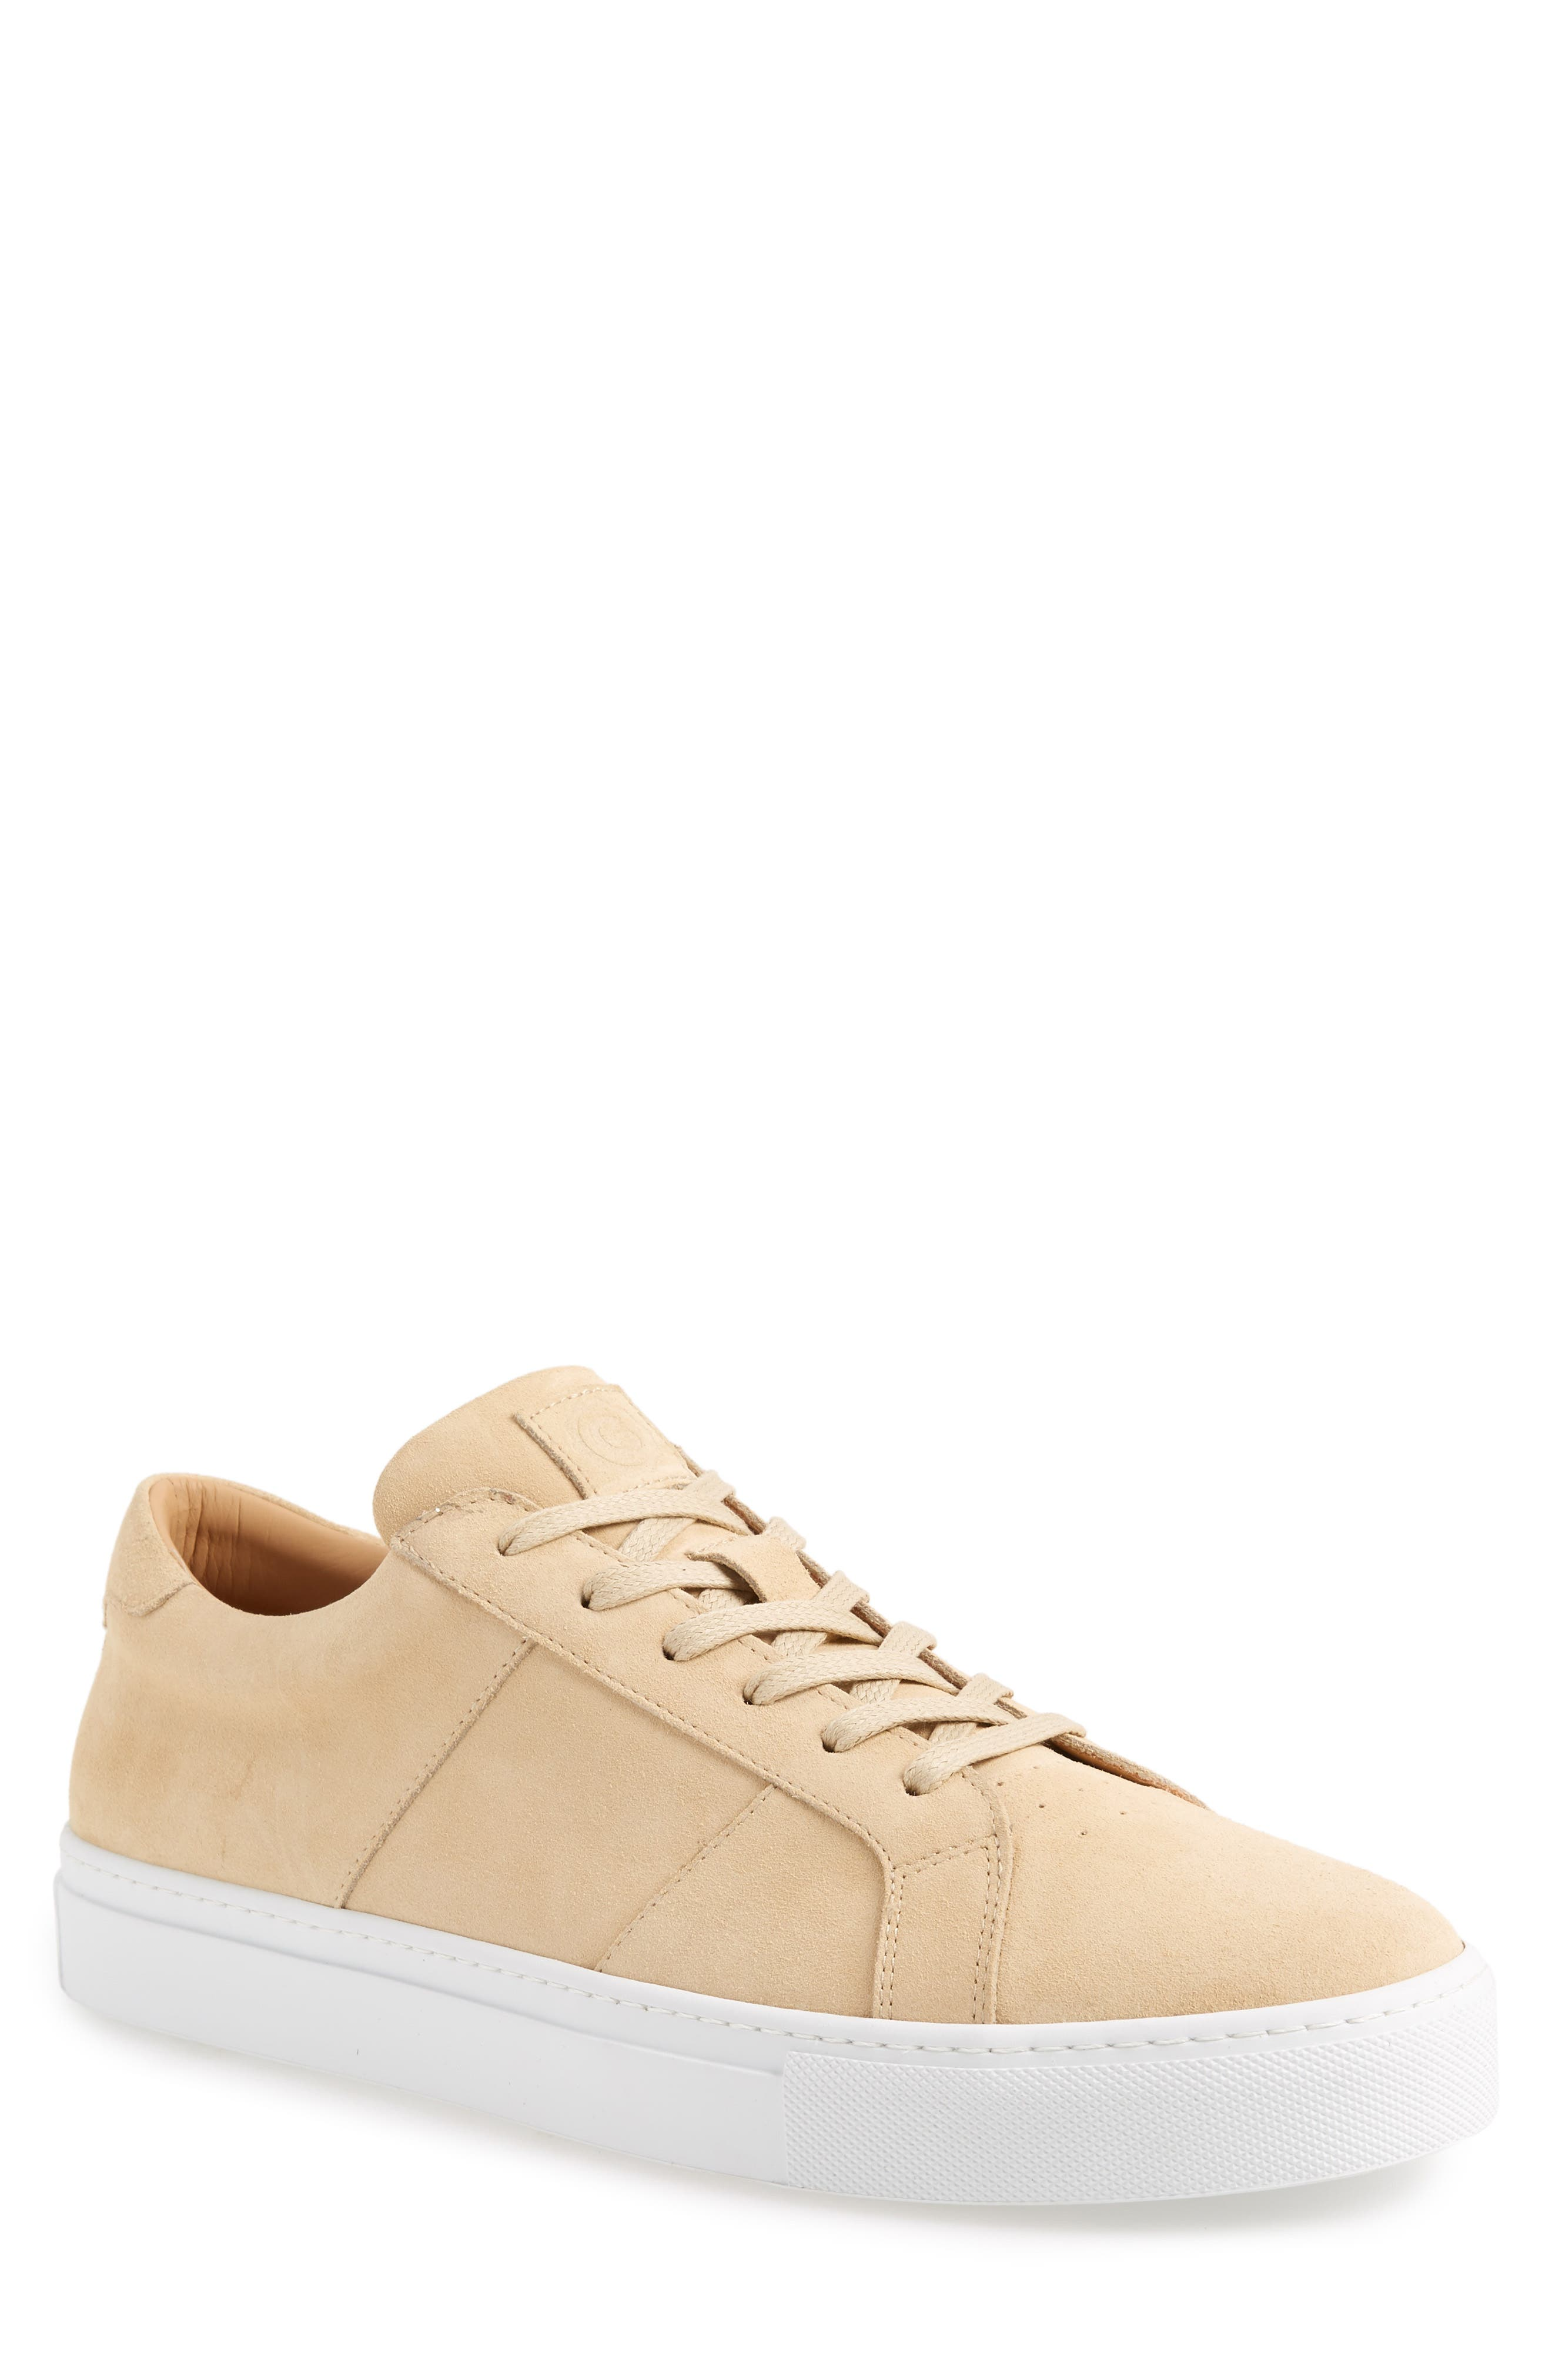 Nick Wooster x GREATS Royale Sneaker,                         Main,                         color, 250